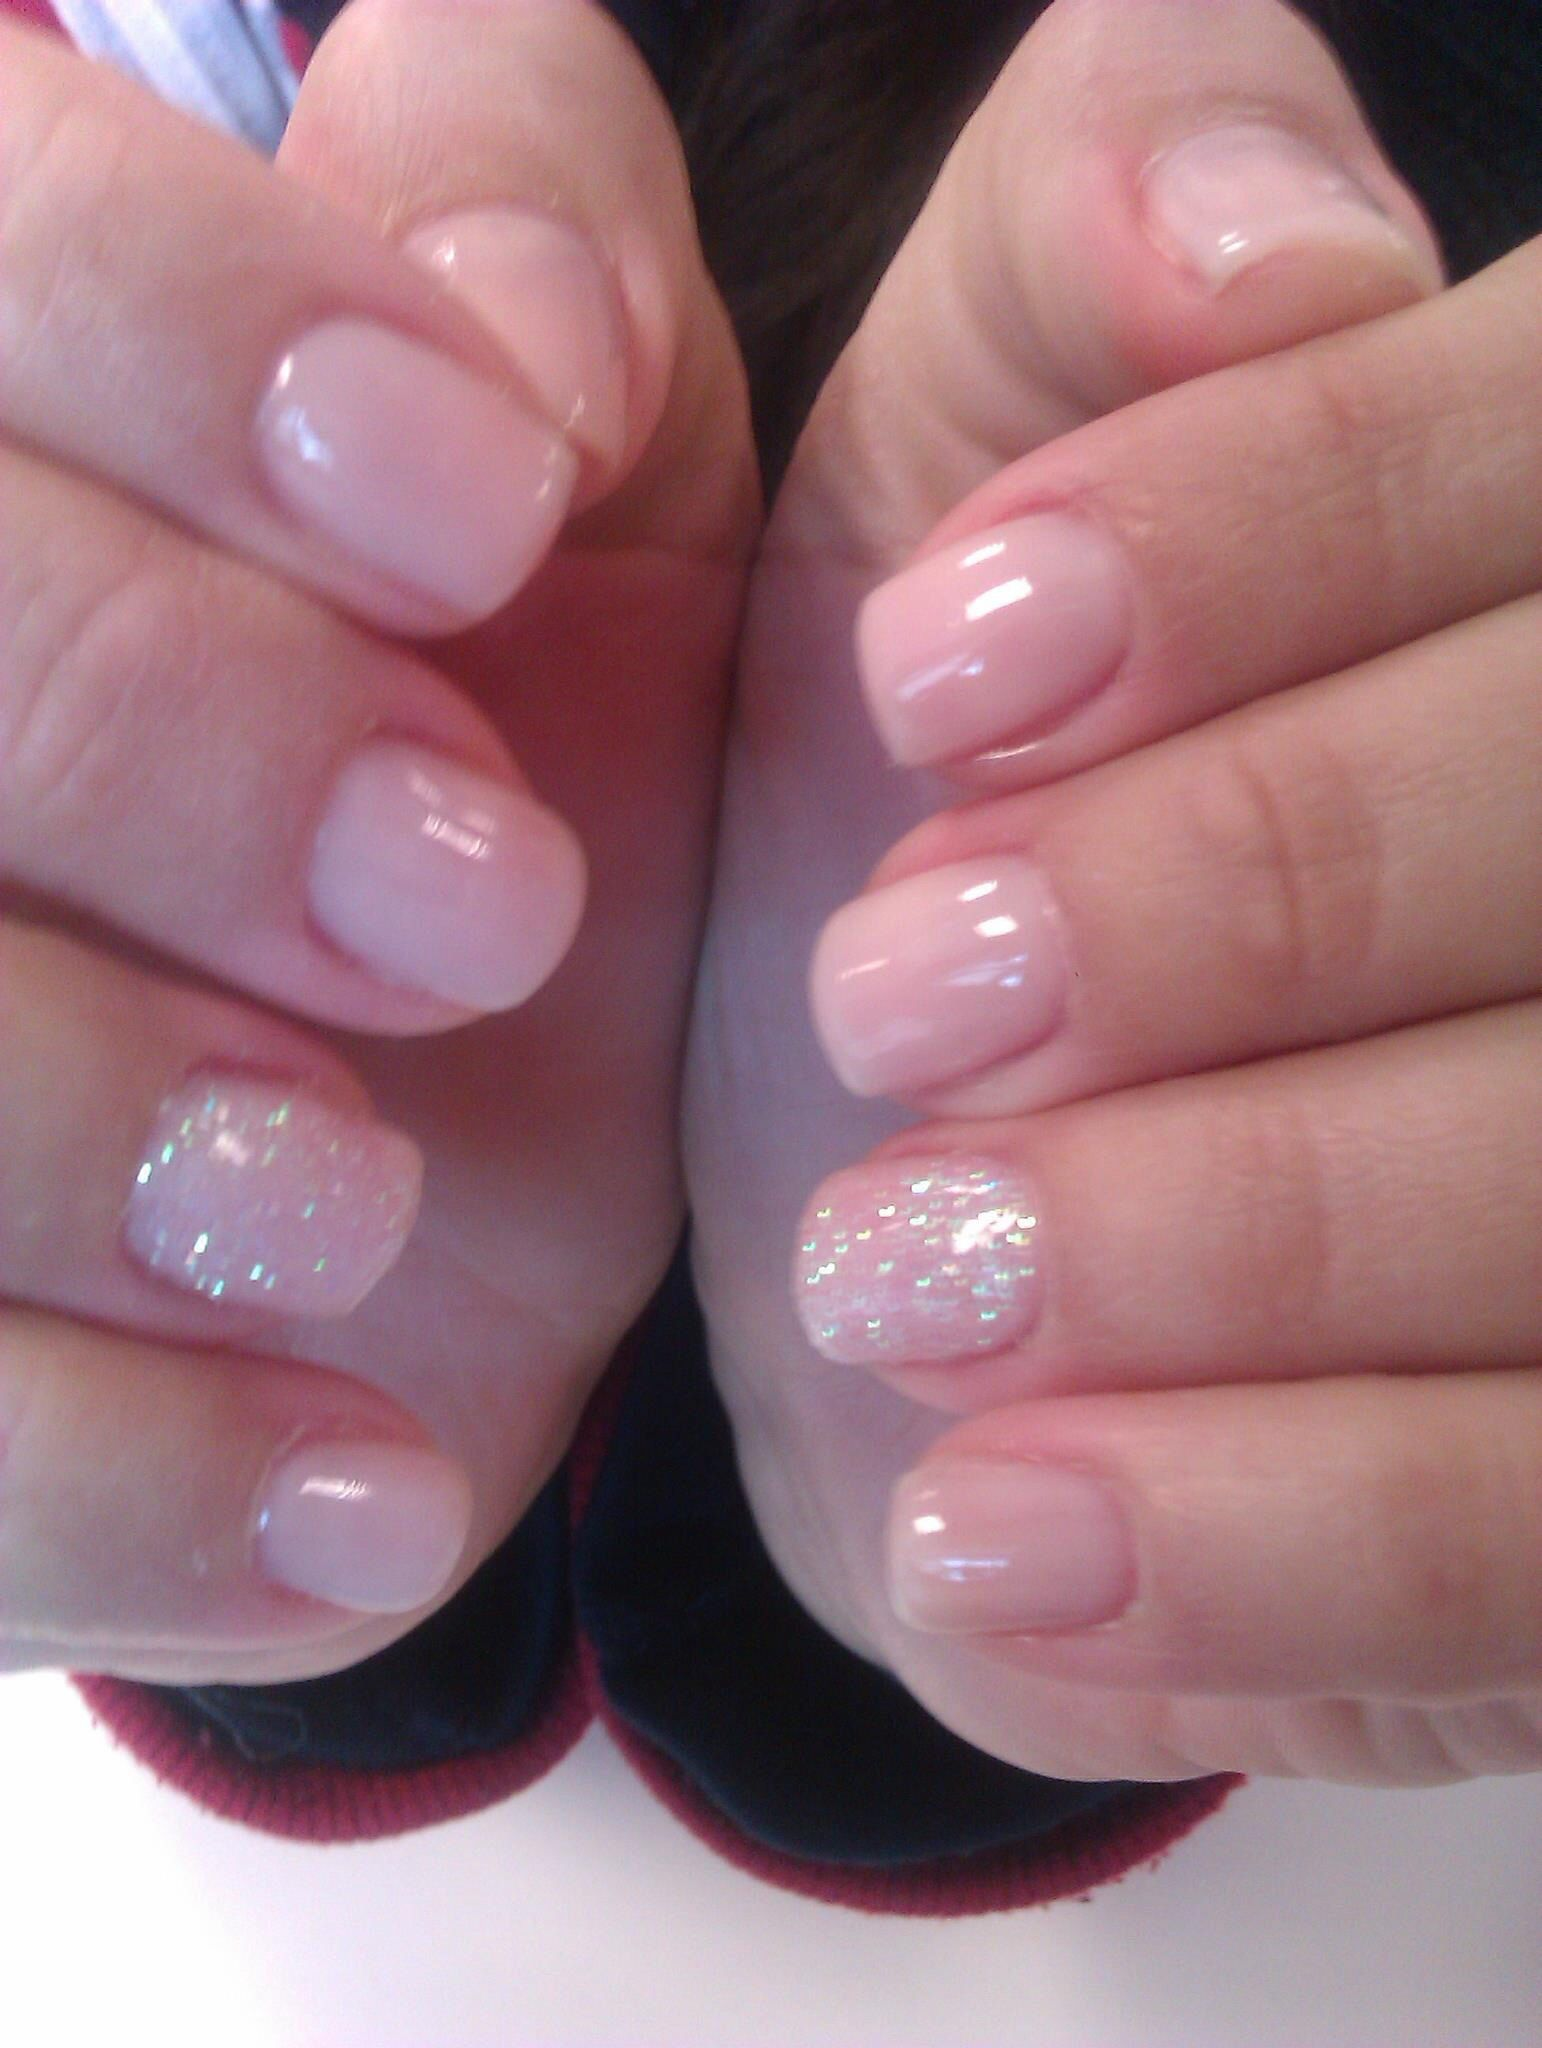 Natural Gel Nails With Glitter Pink Gel Nails Glitter Gel Nails Natural Gel Nails